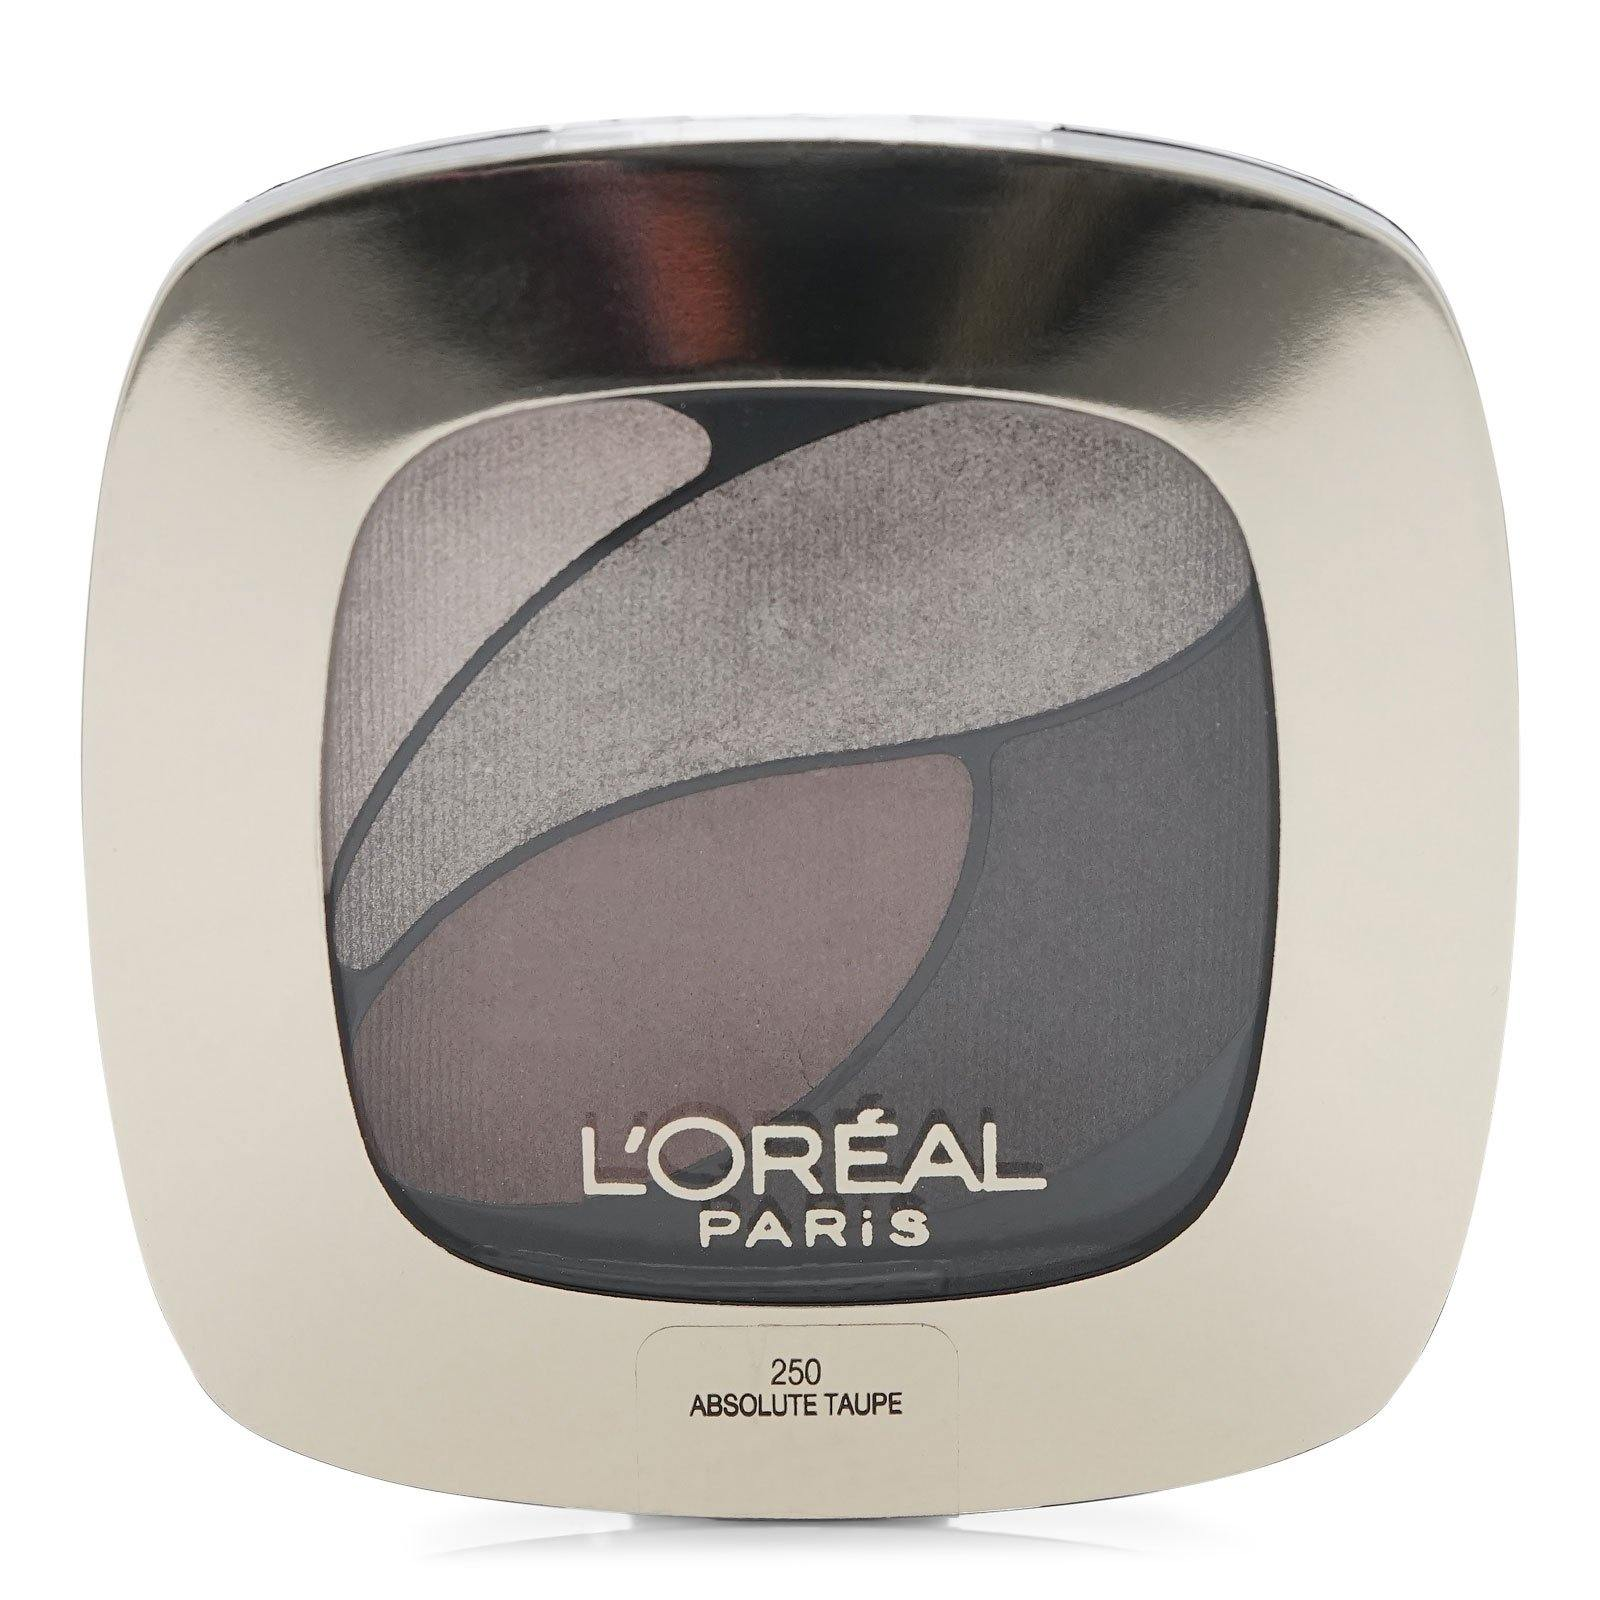 LOREAL DUAL EFFECTS EYESHADOW QUAD- ABSOLUTE TAUPE (12/cs)